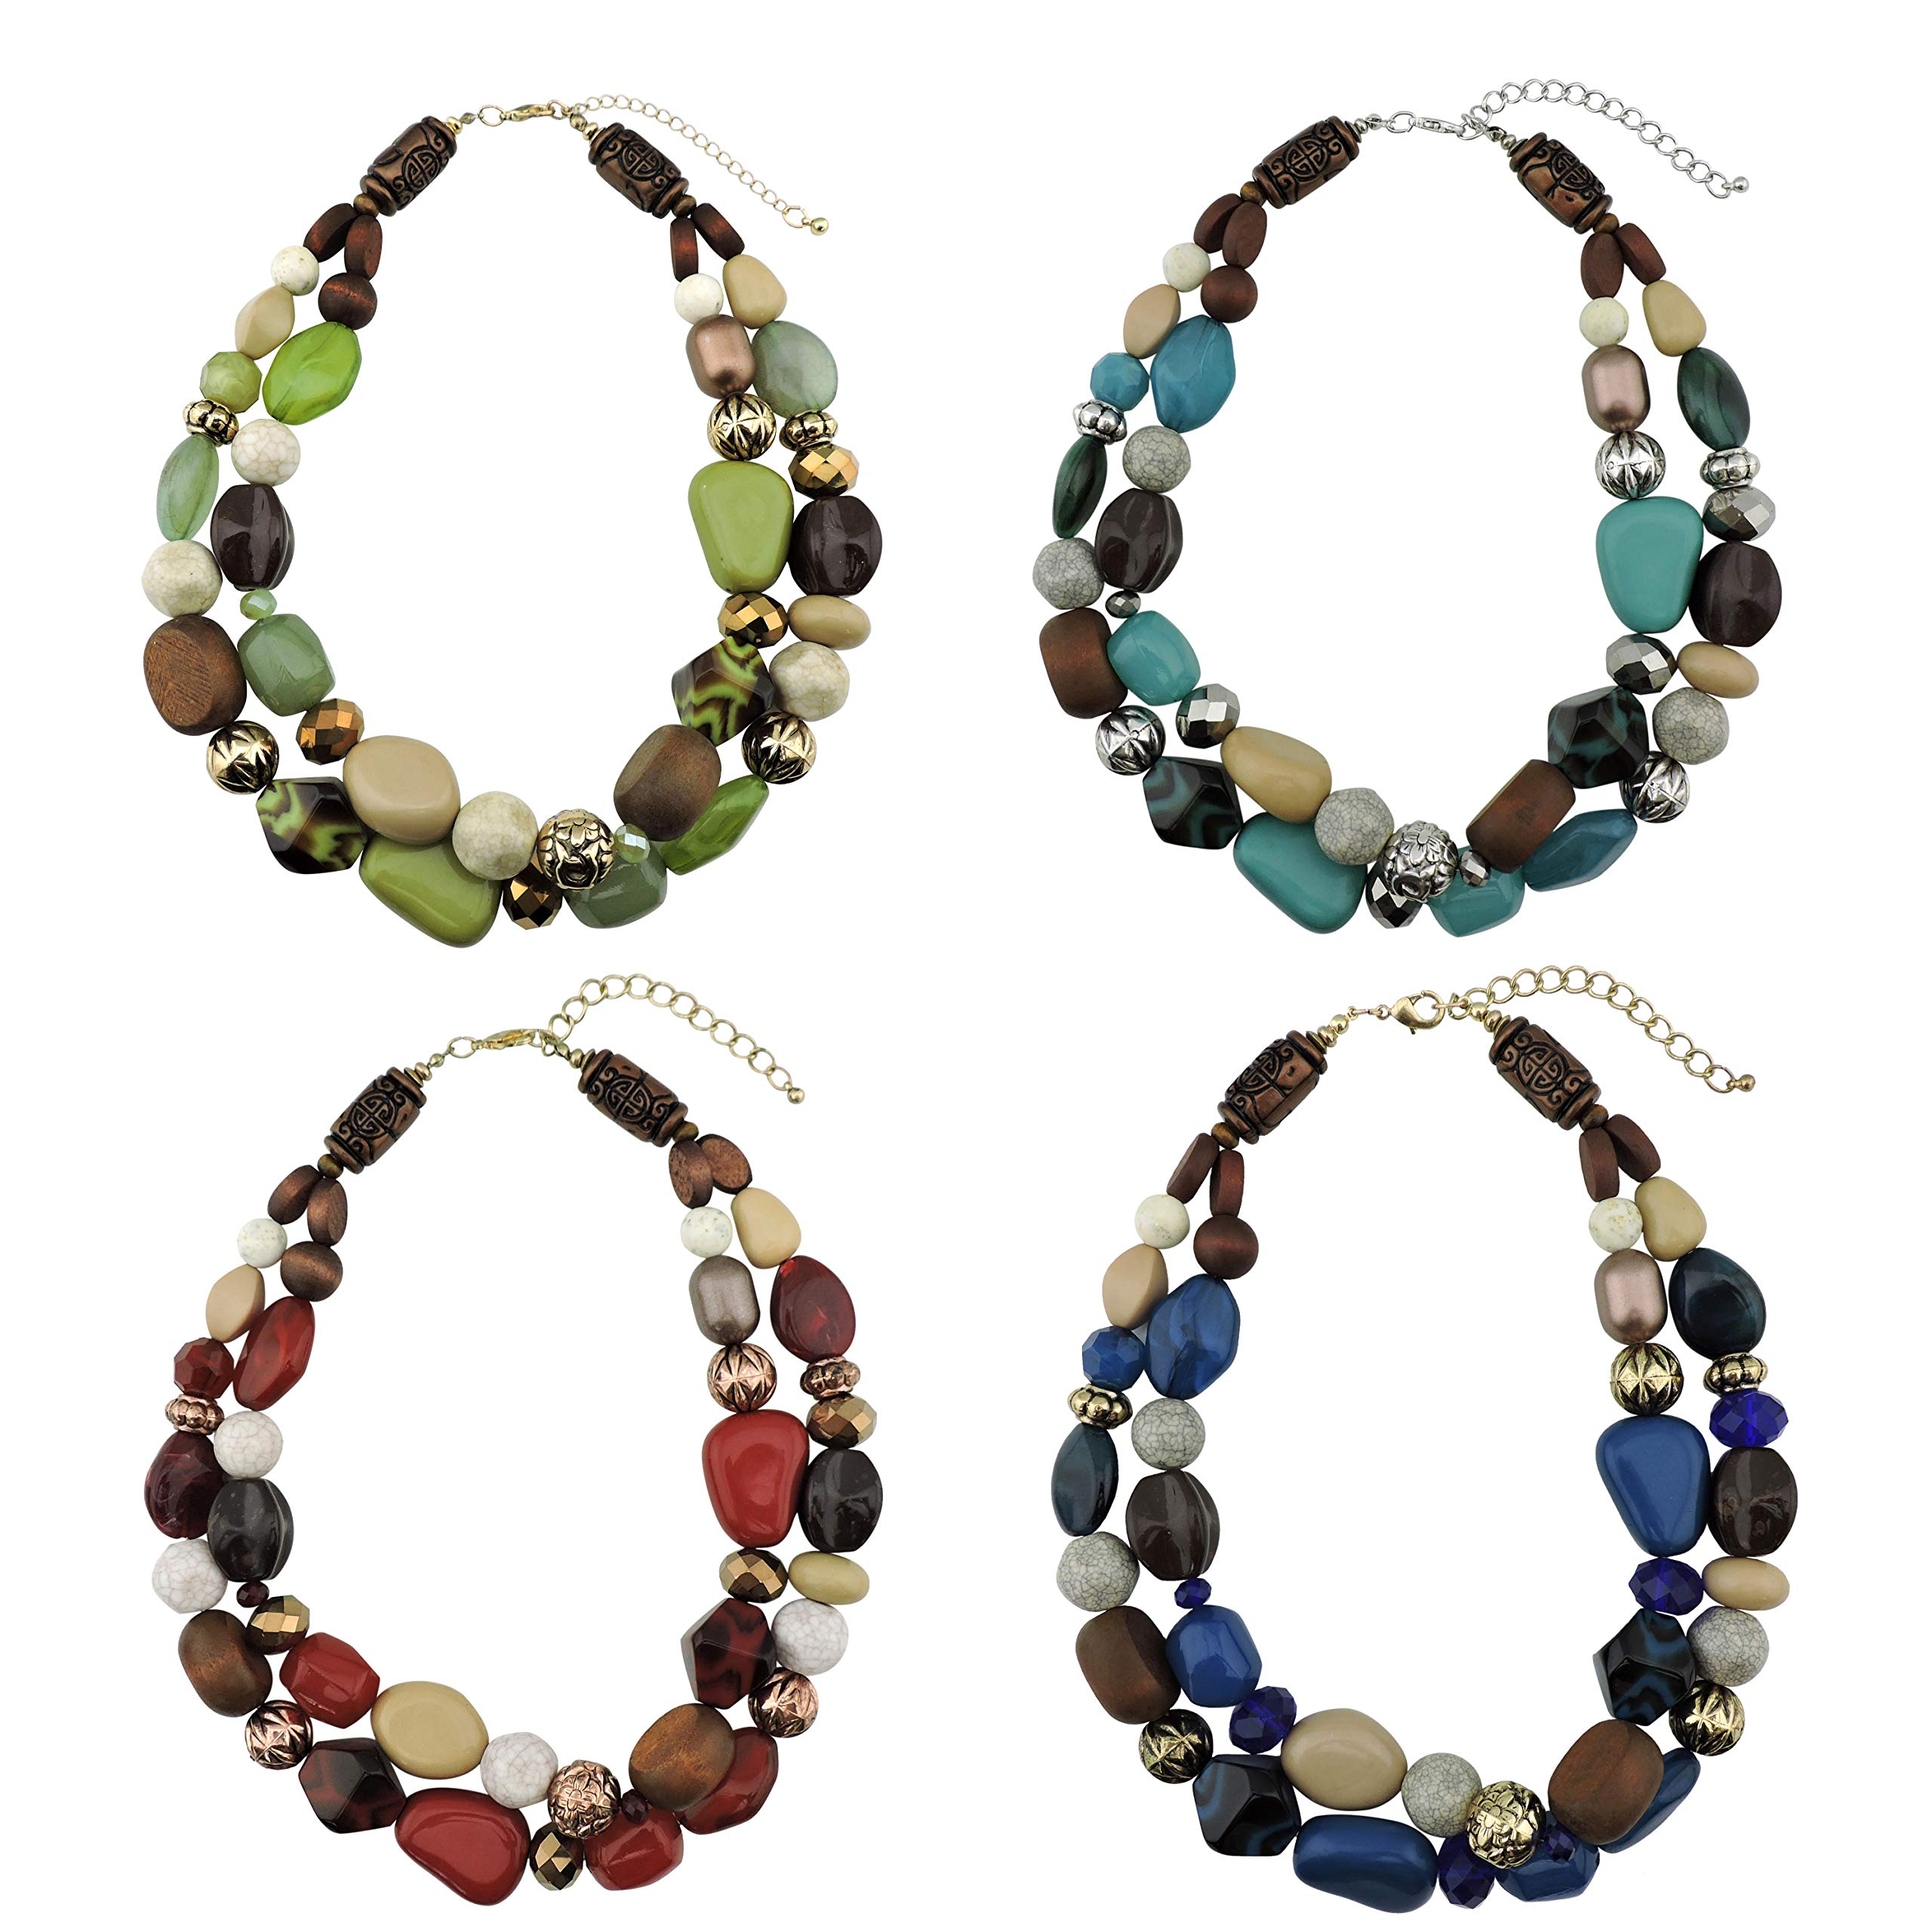 Bocar 2 Layer Statement Chunky Beaded Fashion Necklace for Women Gifts (NK-10384-1 Set)